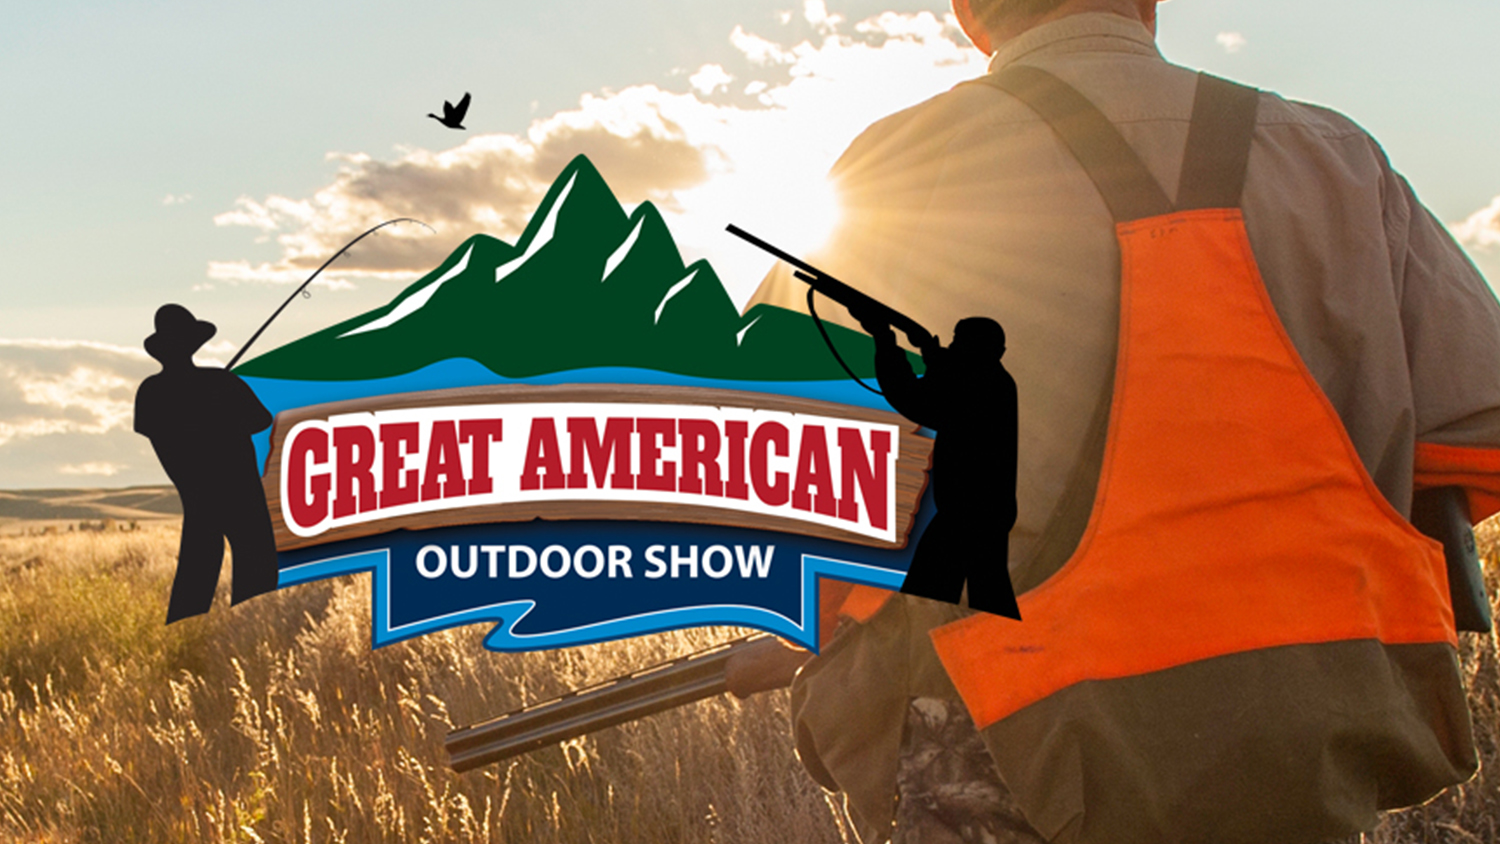 Great American Outdoor Show Events for Saturday February 13